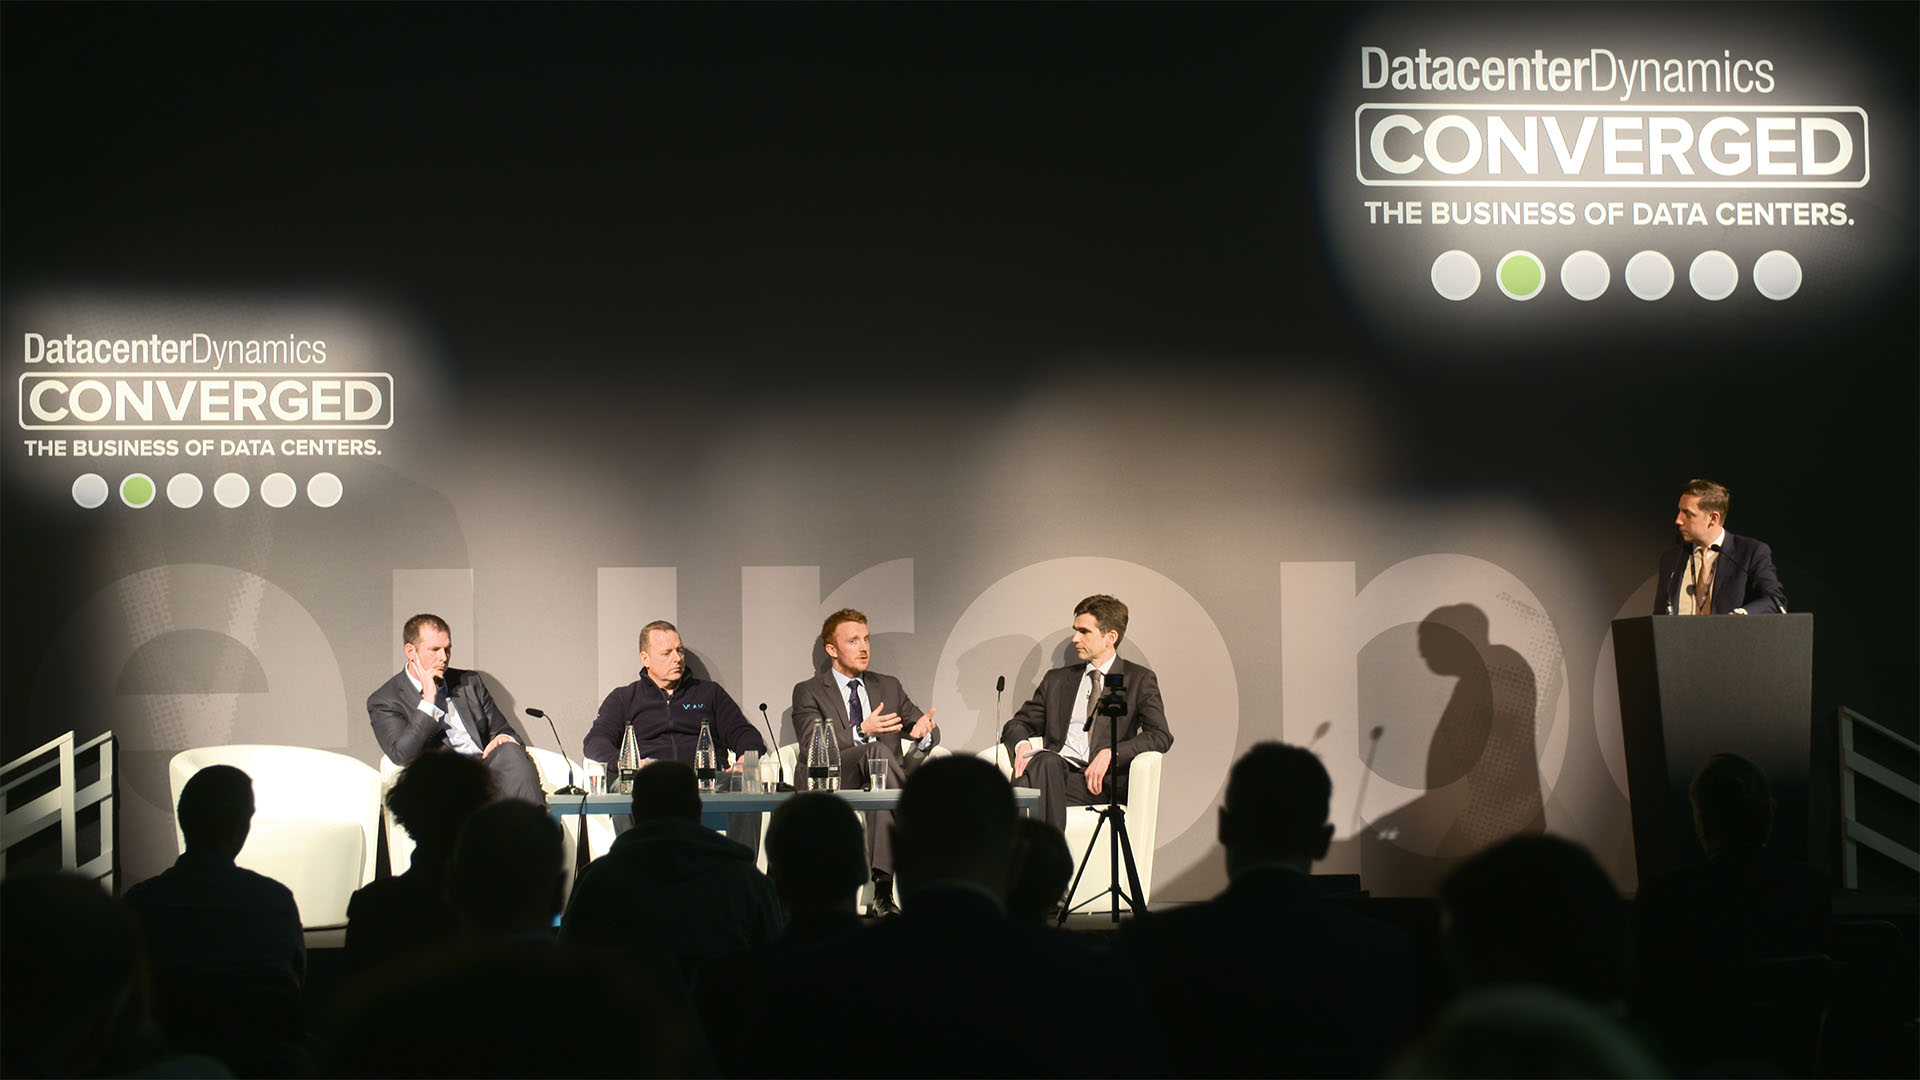 Panel Discussion at a Trade Show